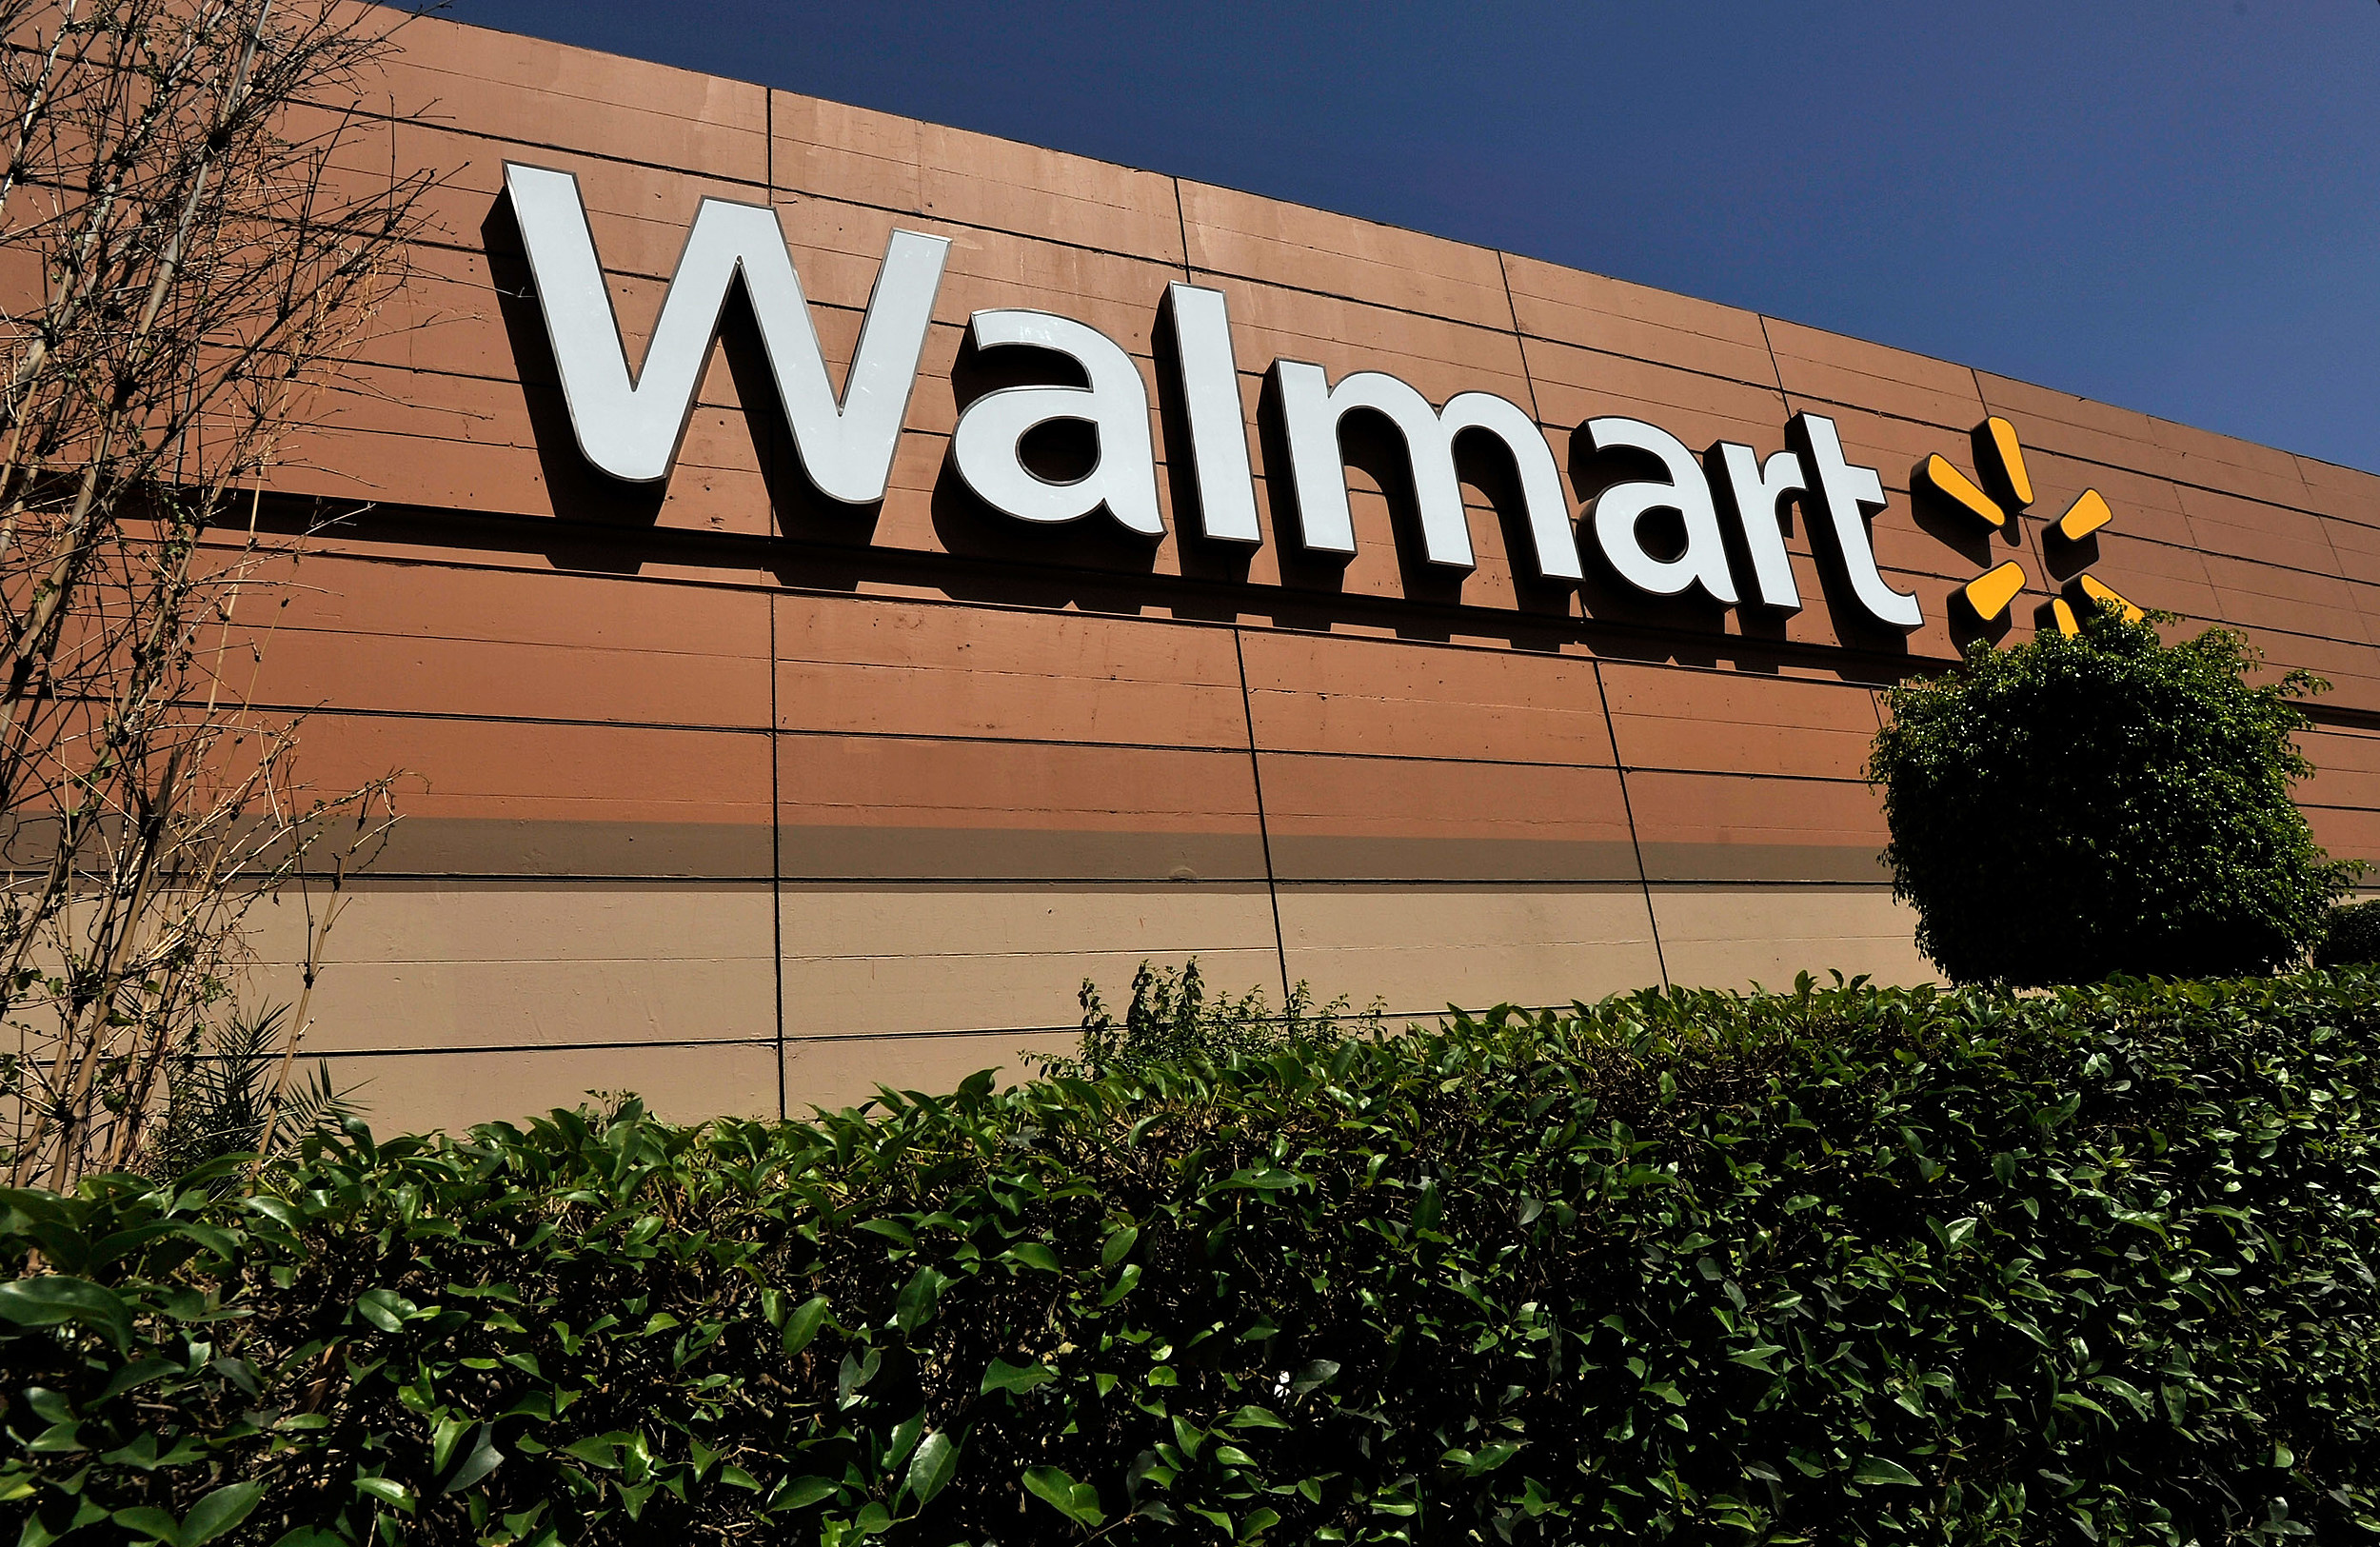 NY Couple Arrested After Eating Rotisserie Chicken at Wal-Mart ...